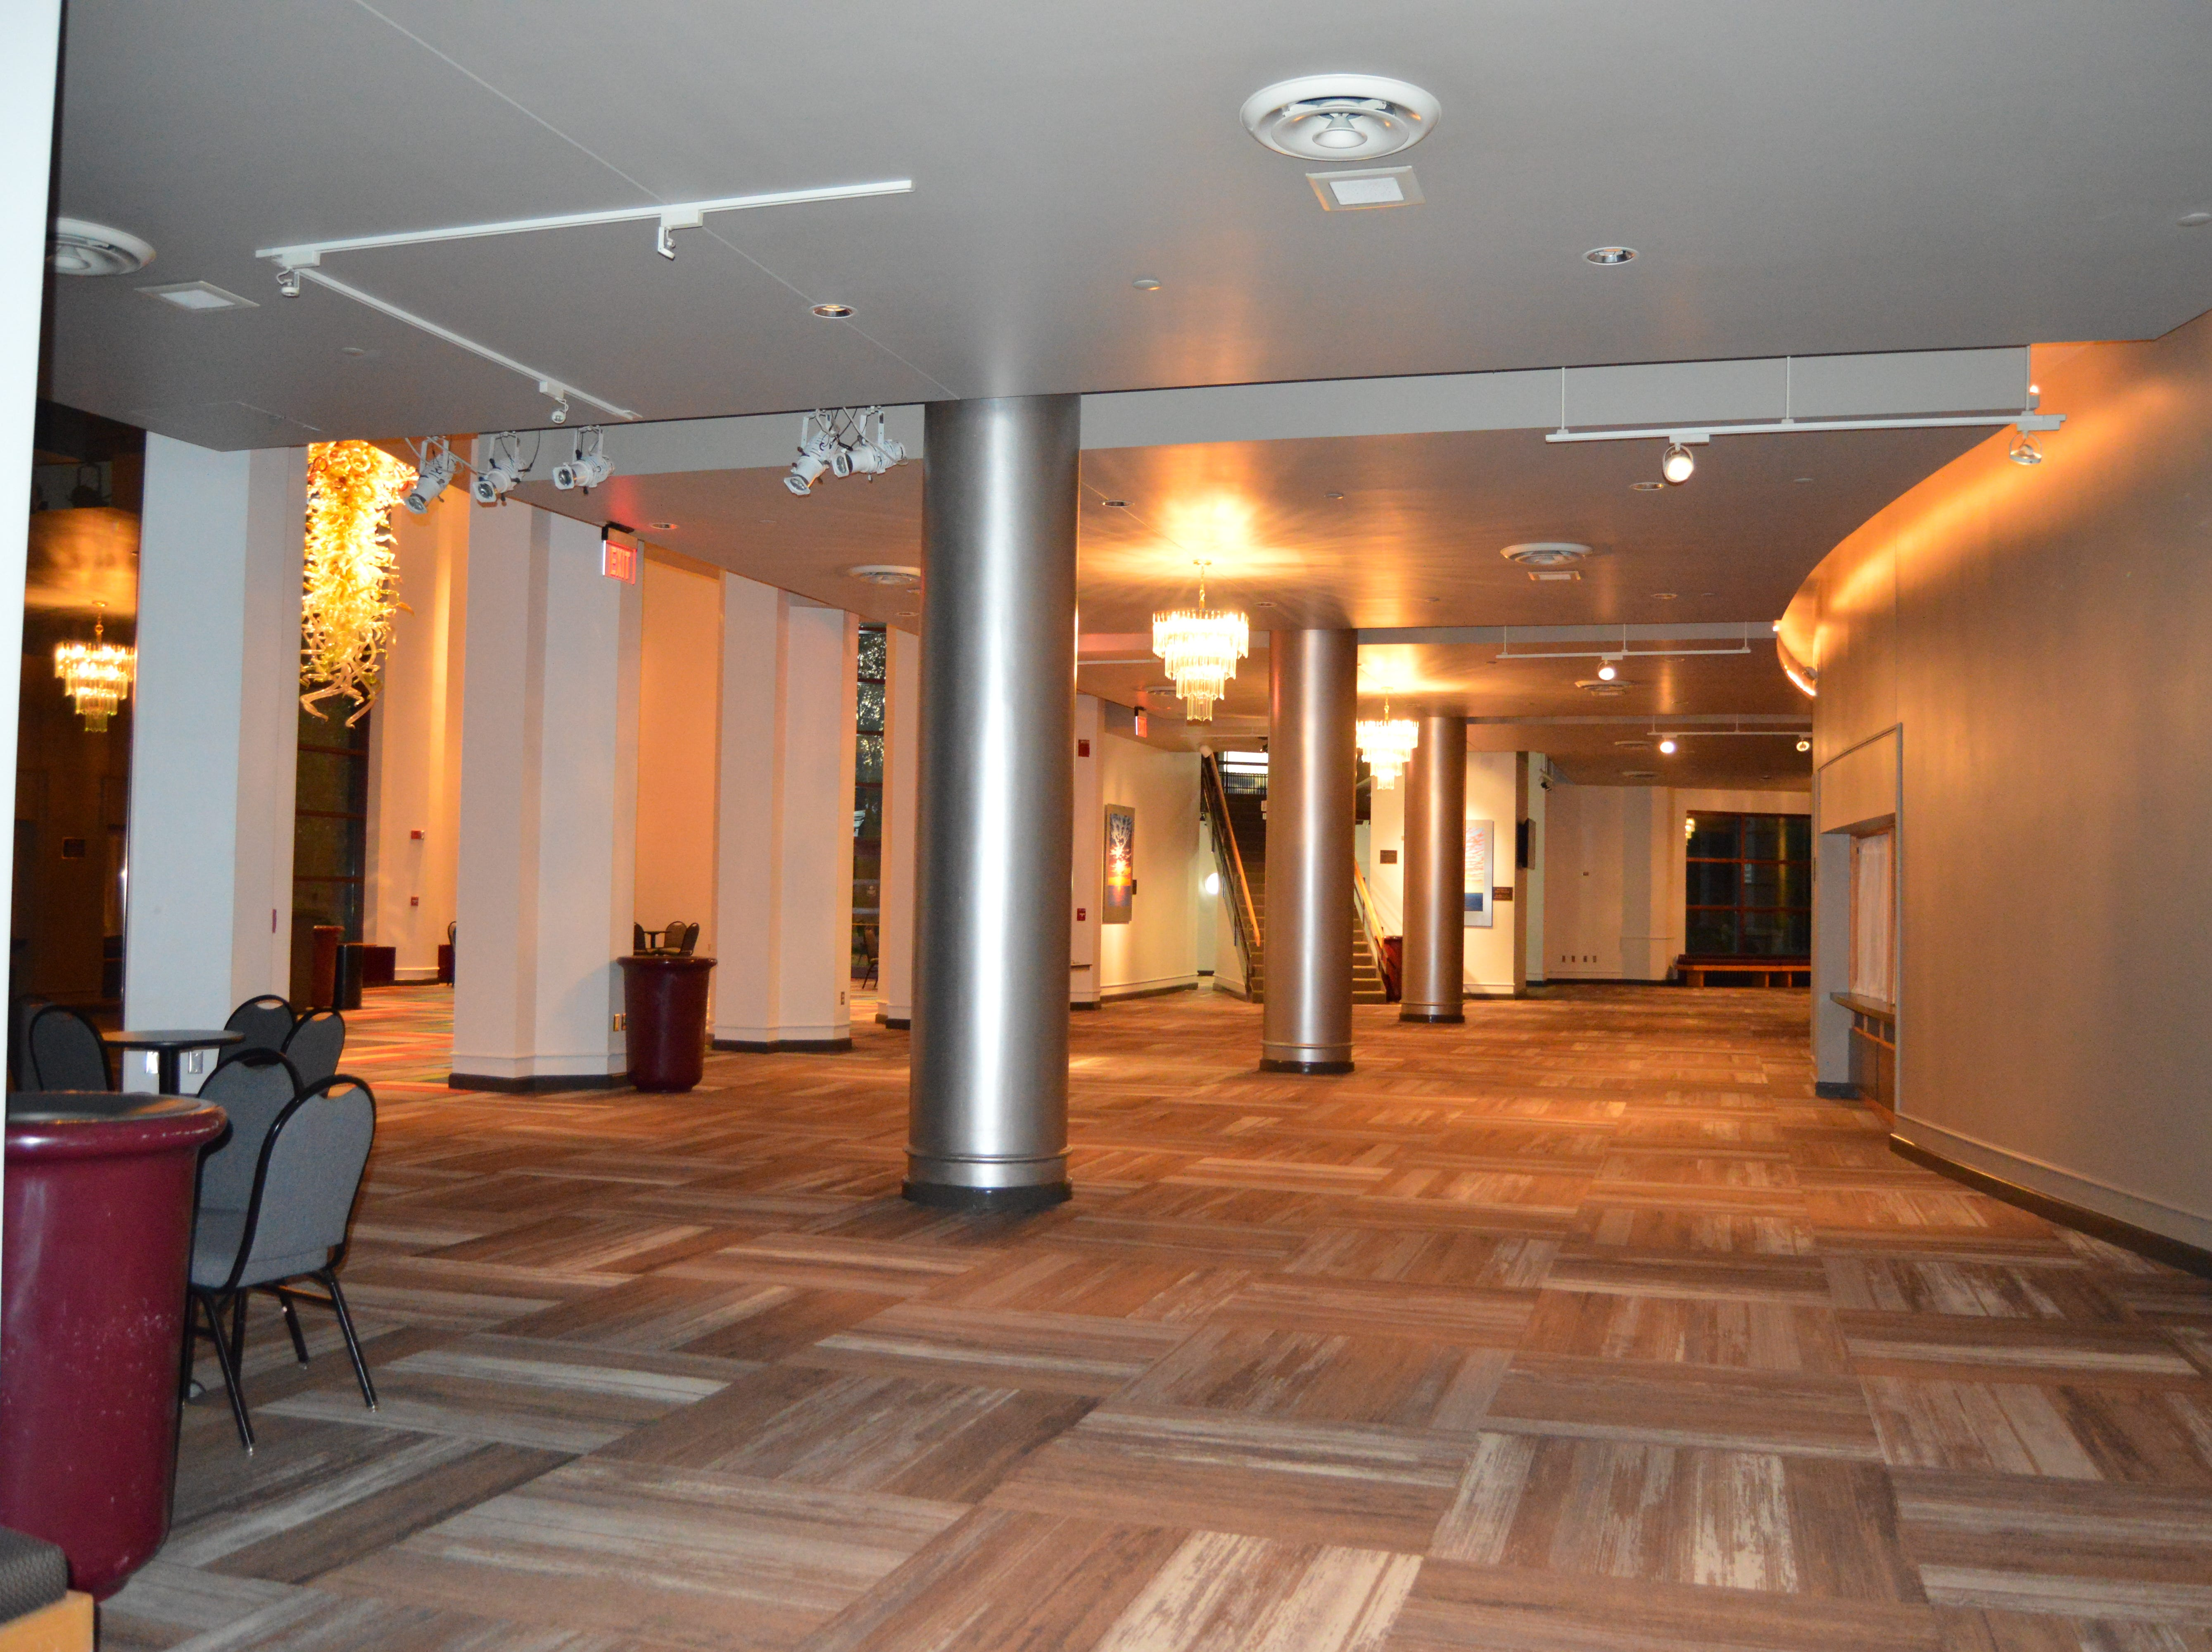 AFTER: The Weidner Center lobby was remodeled in time for the 25th Anniversary Season Concert on Sept. 22.